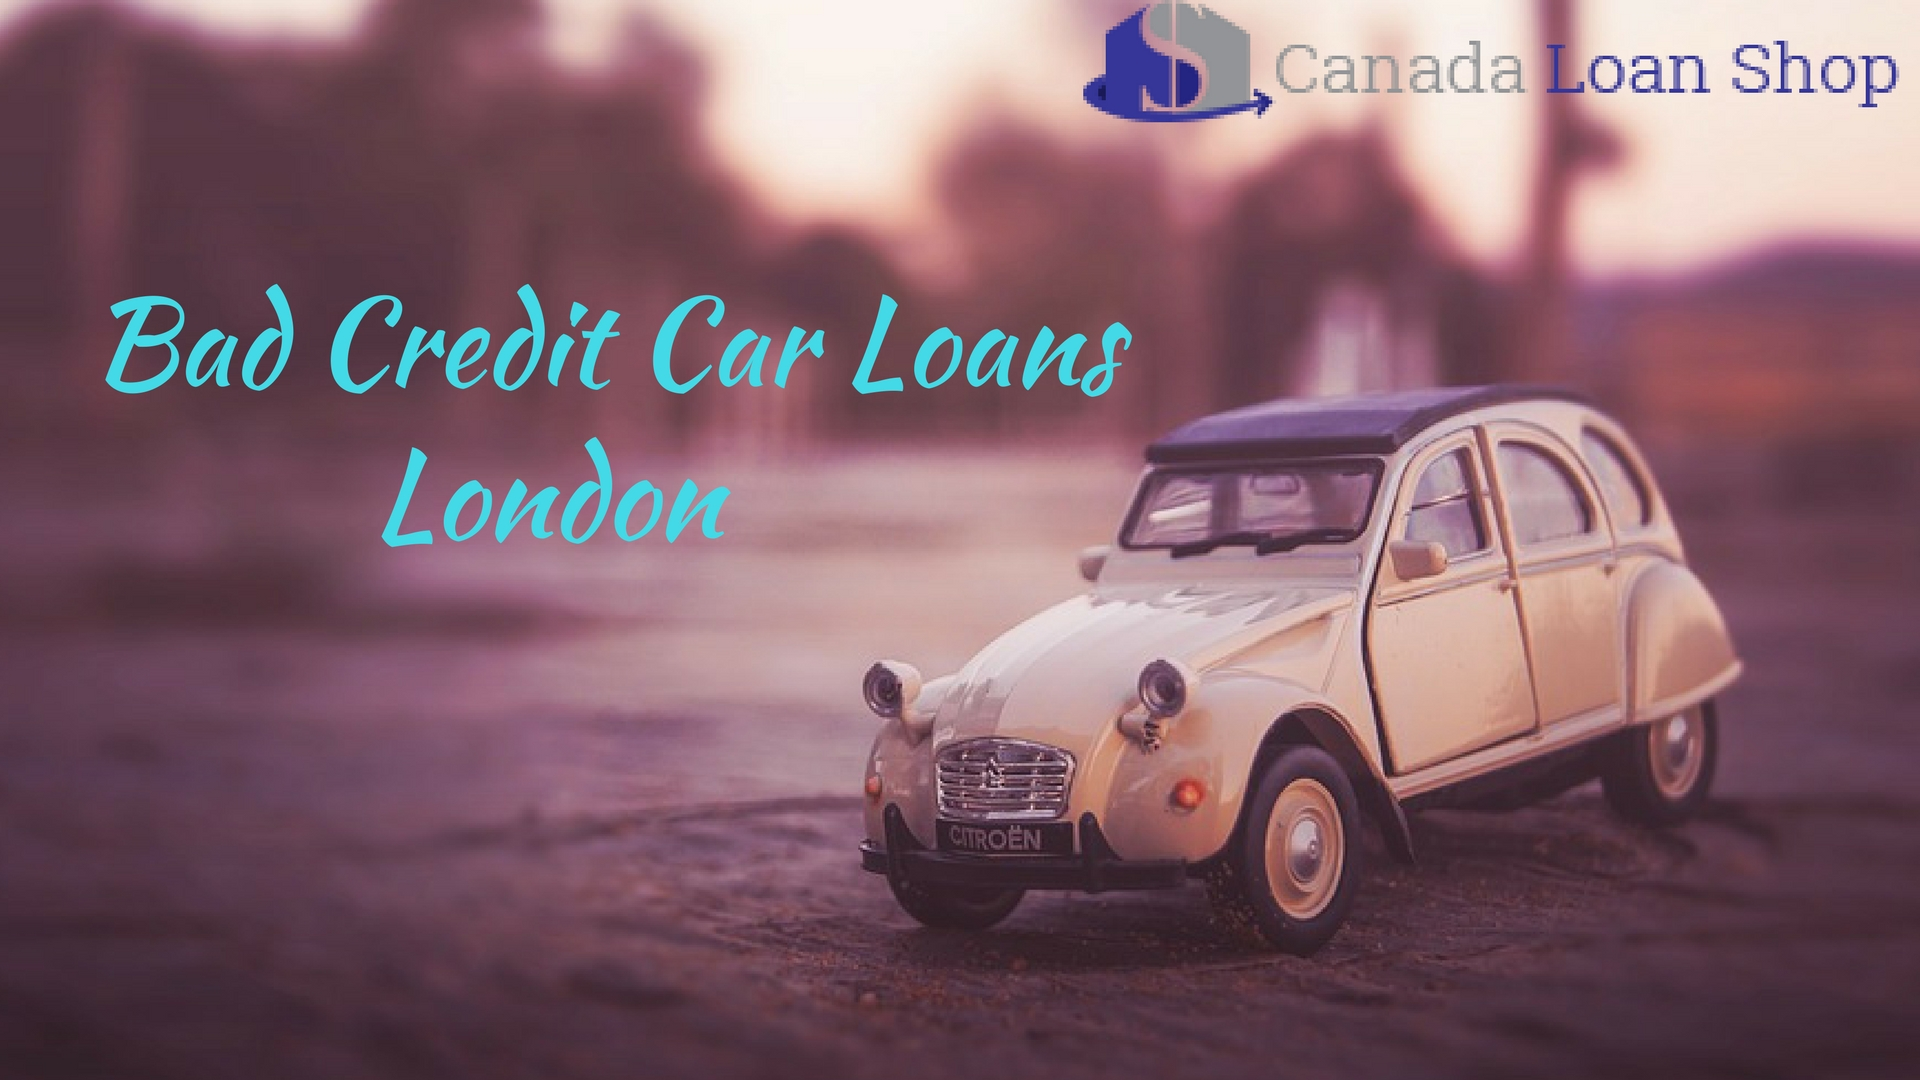 Bad Credit Car Title Loans London - Exclusive Cash Loans!